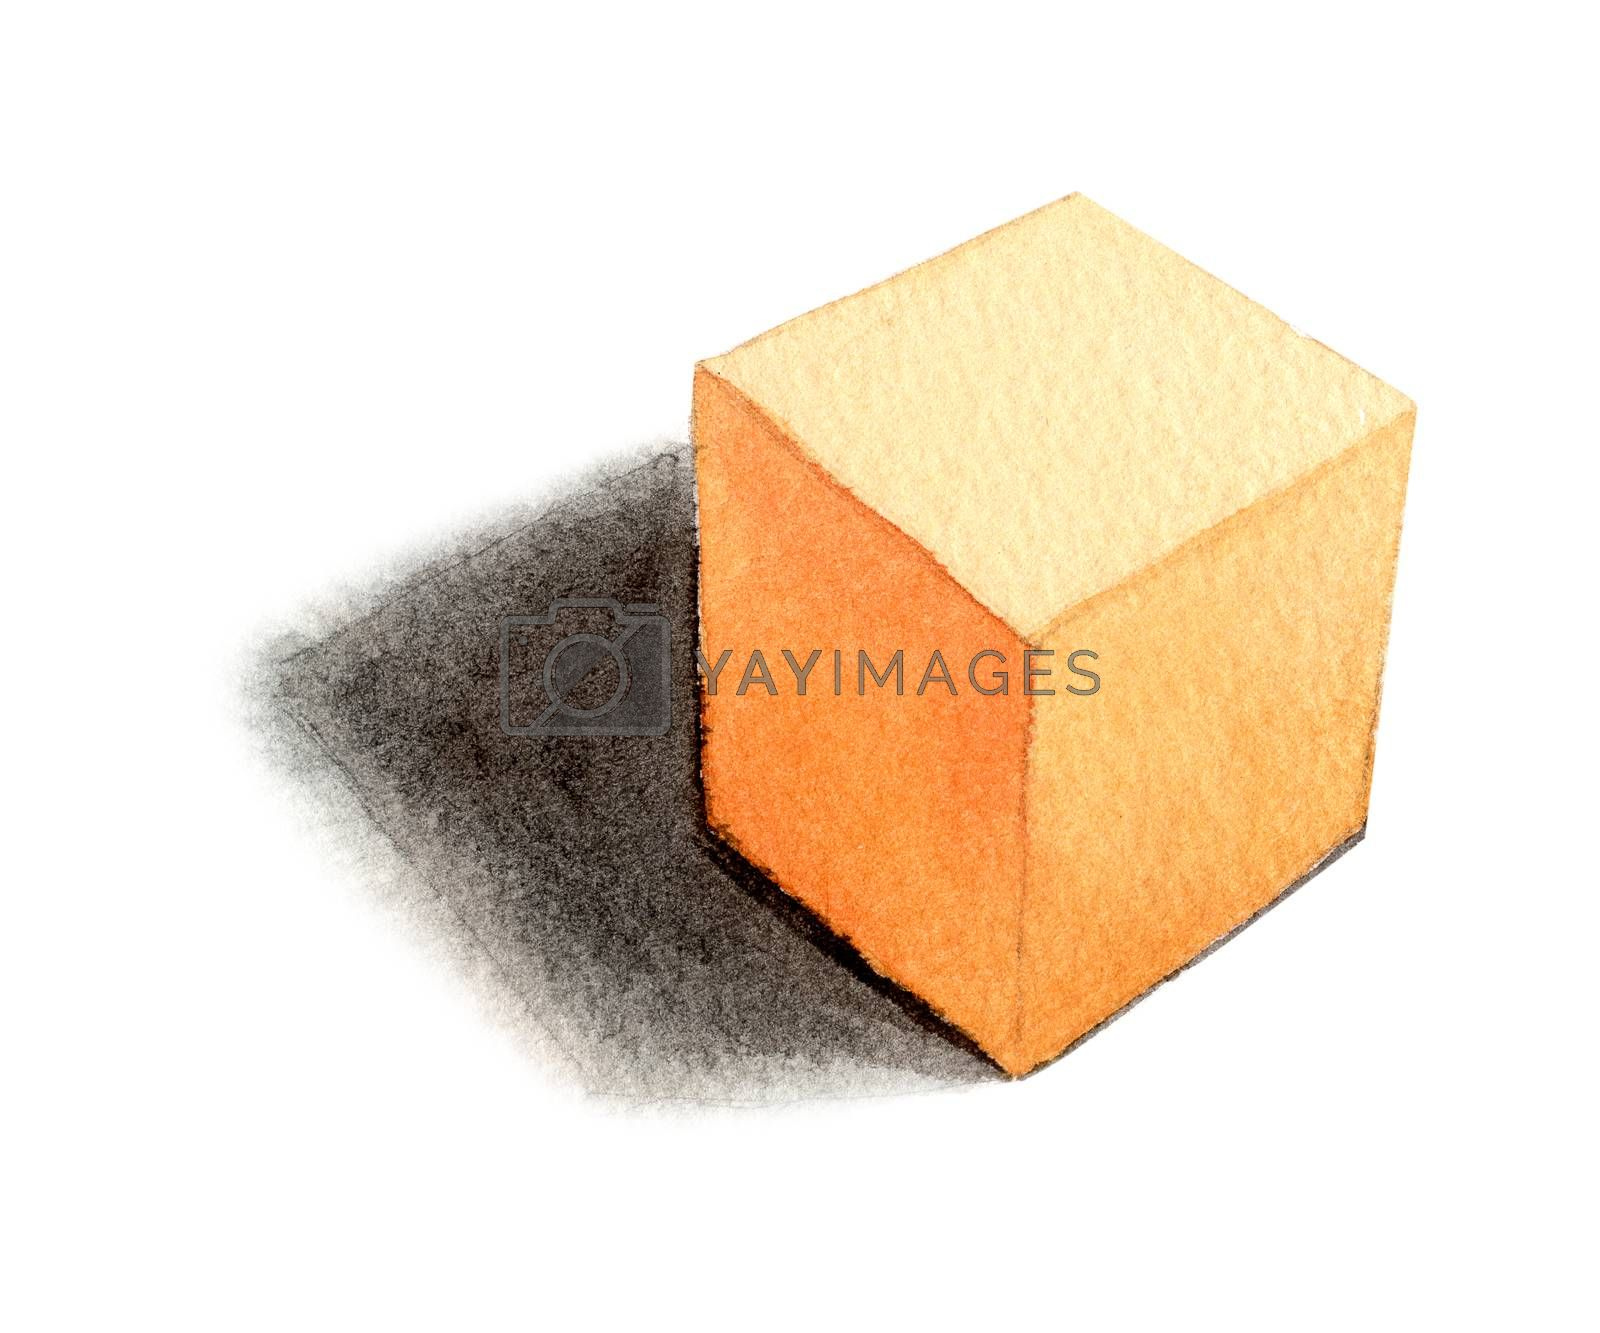 orange cube - light from the right, basic geometric shapes with dramatic light and shadow in watercolor style. Solids isolated on a white background. Clipping path.